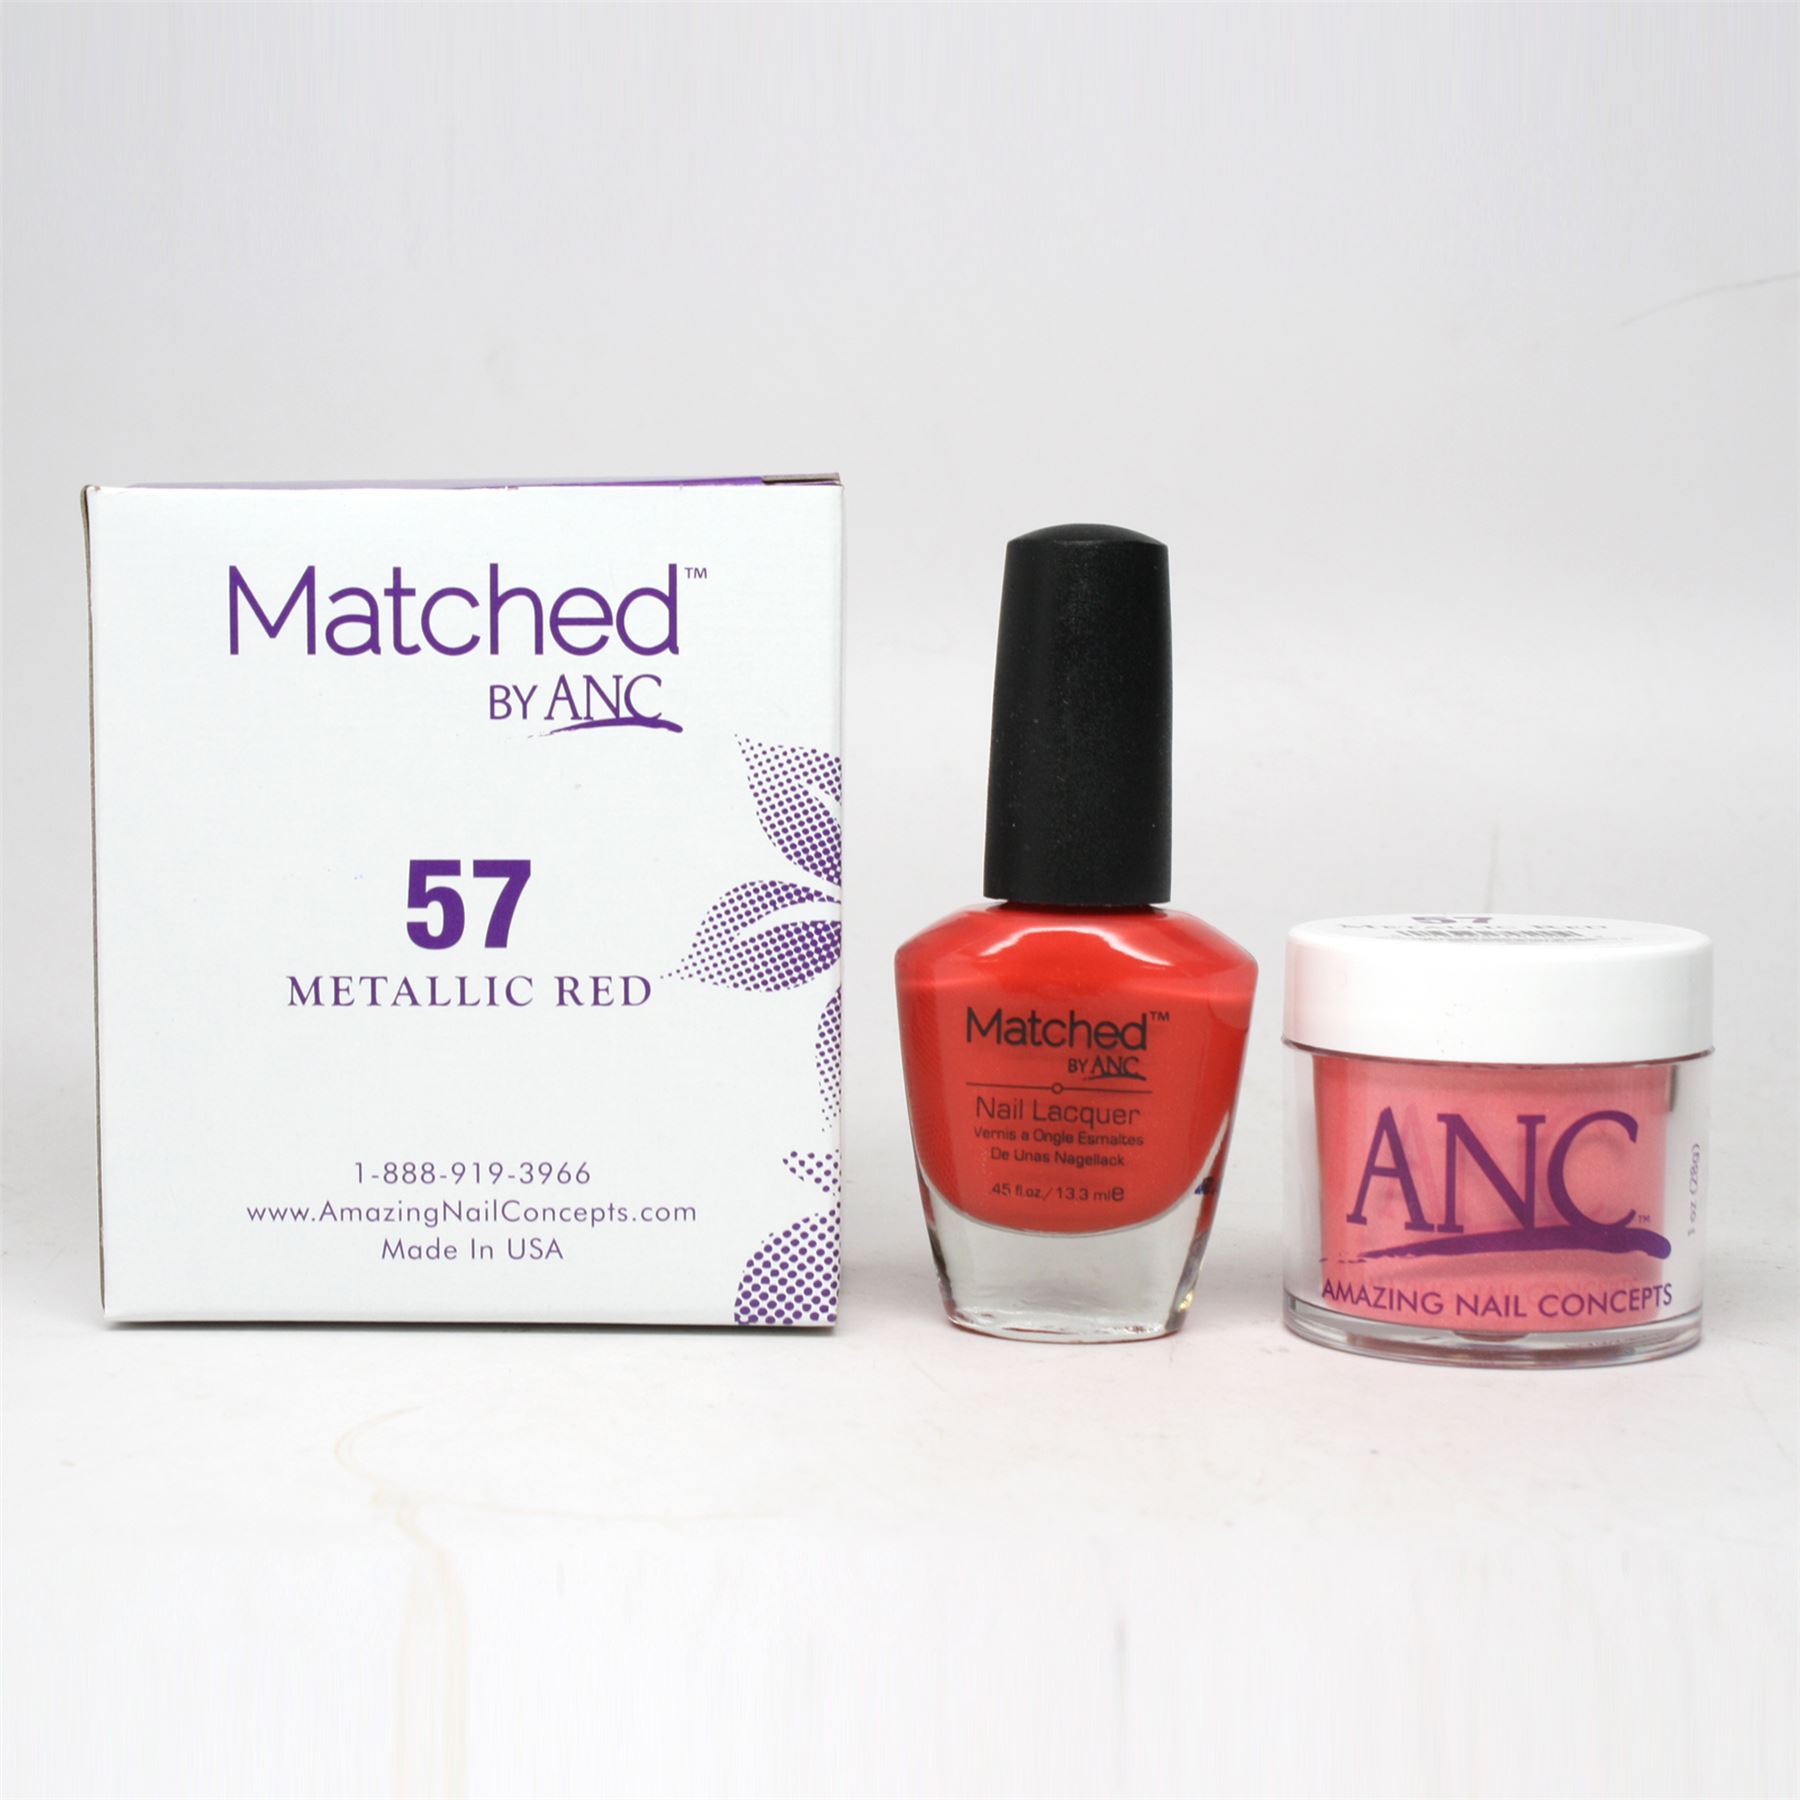 ANC Amazing Nail Concepts Matched Kit # 57 Metallic Red